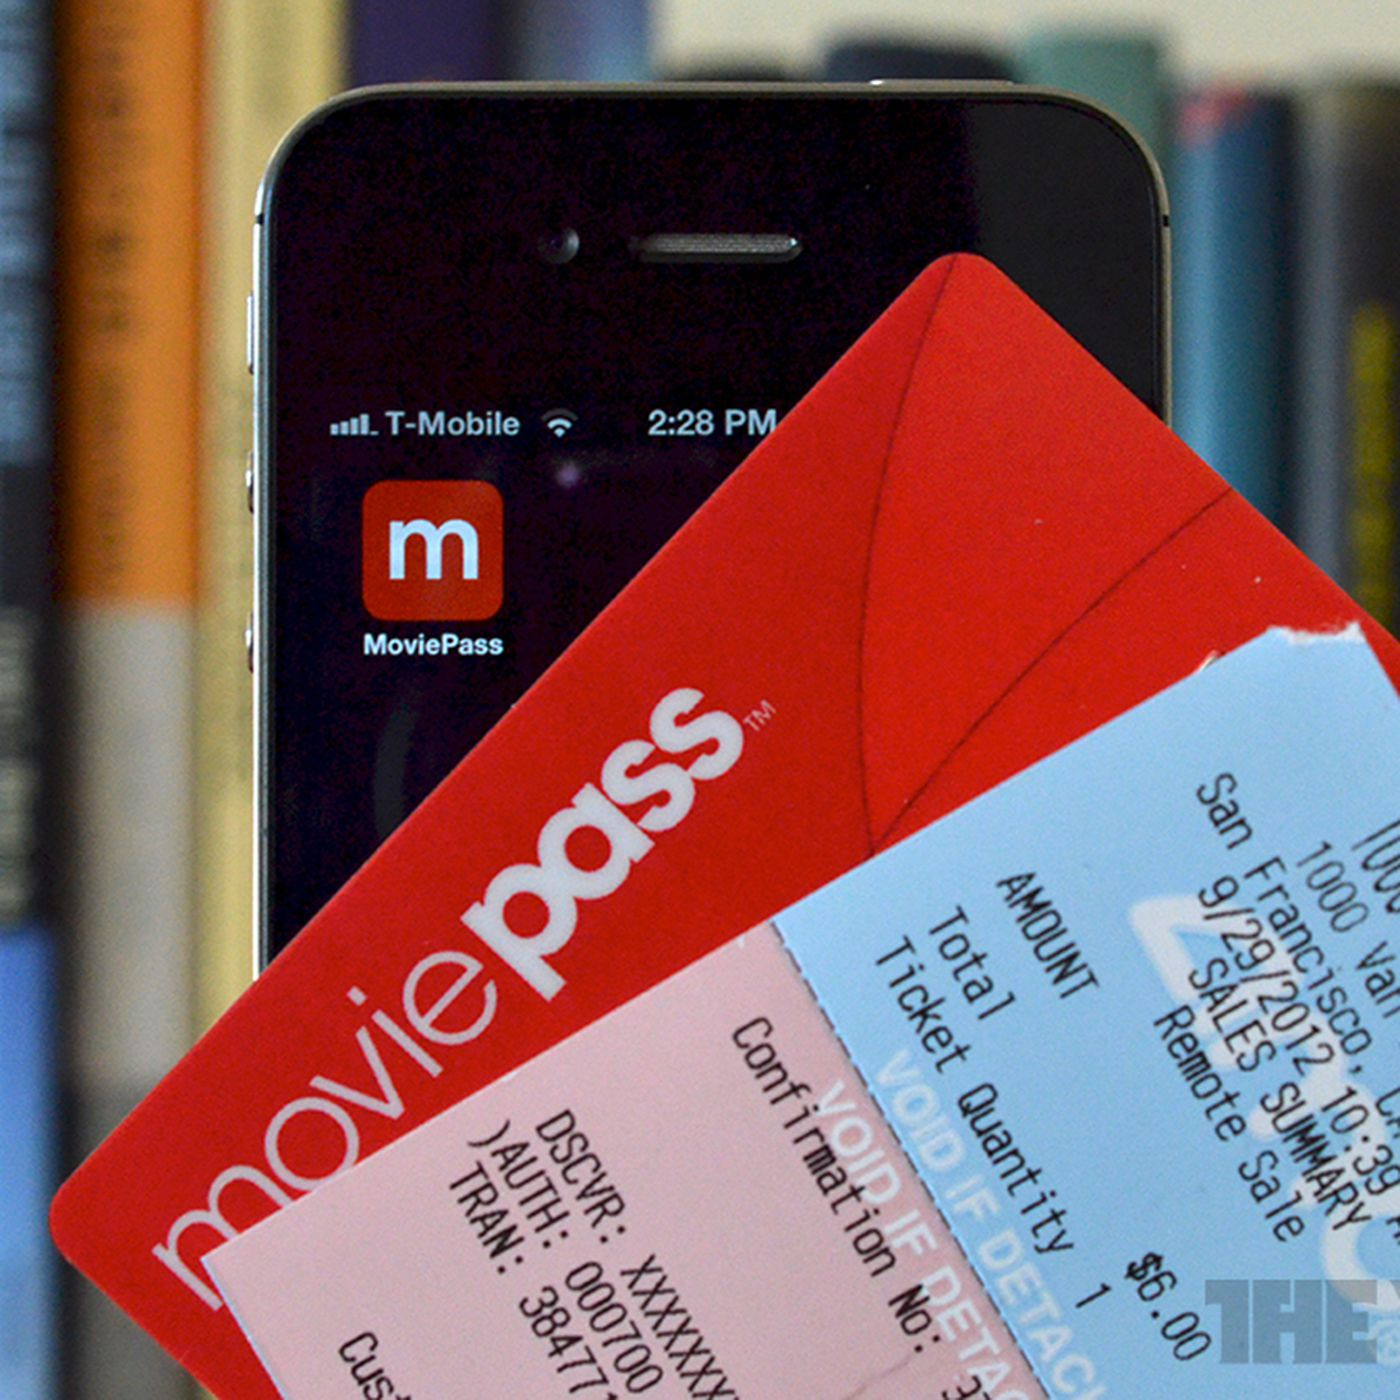 Theater chains are terrified of MoviePass because of